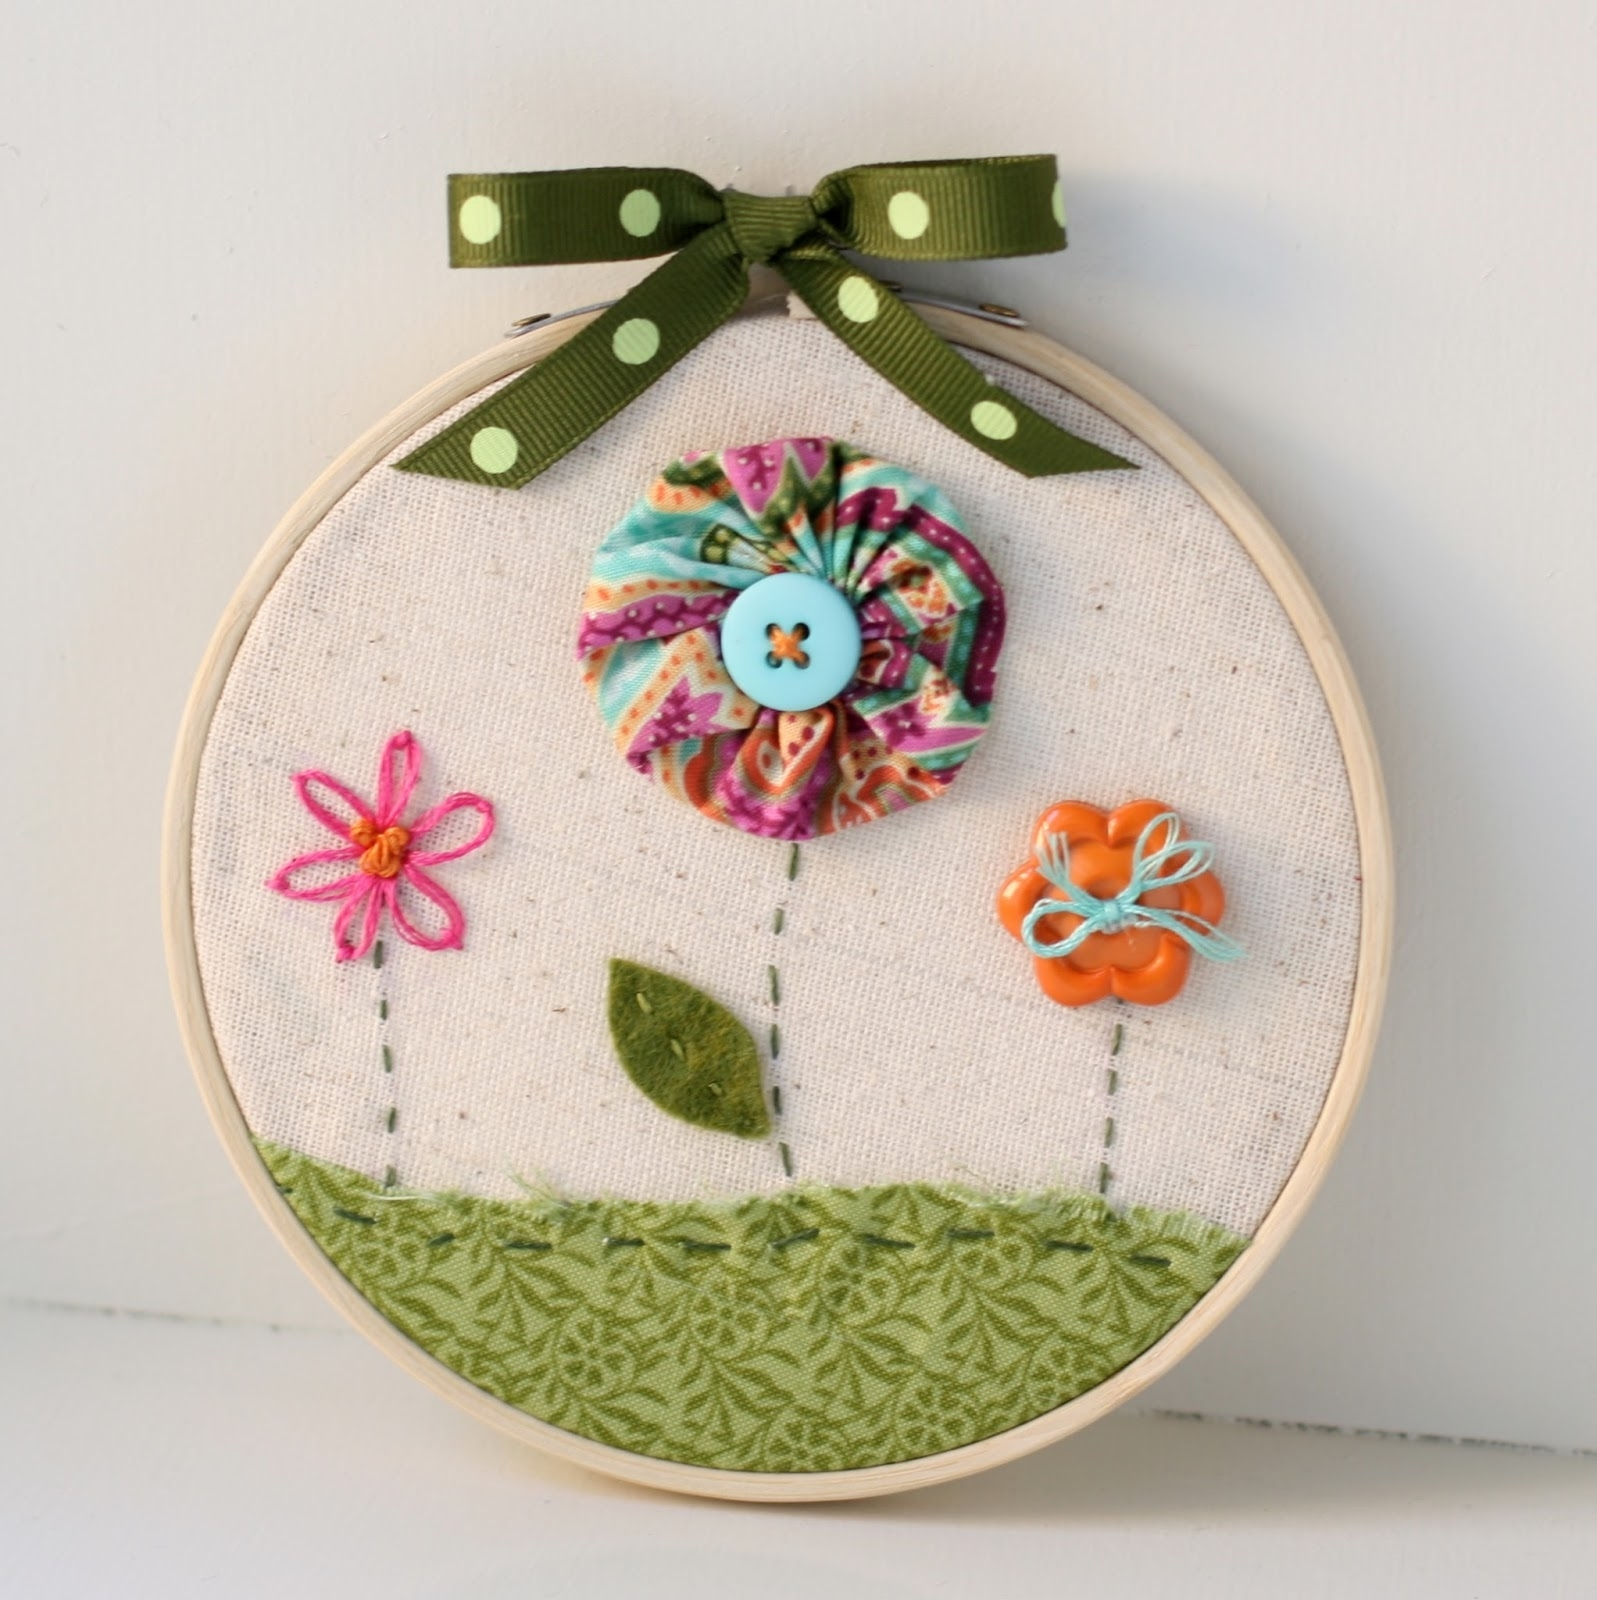 Bunches And Bits: Hoop Art Wall Hanging Inside Most Current Fabric Circle Wall Art (View 12 of 15)